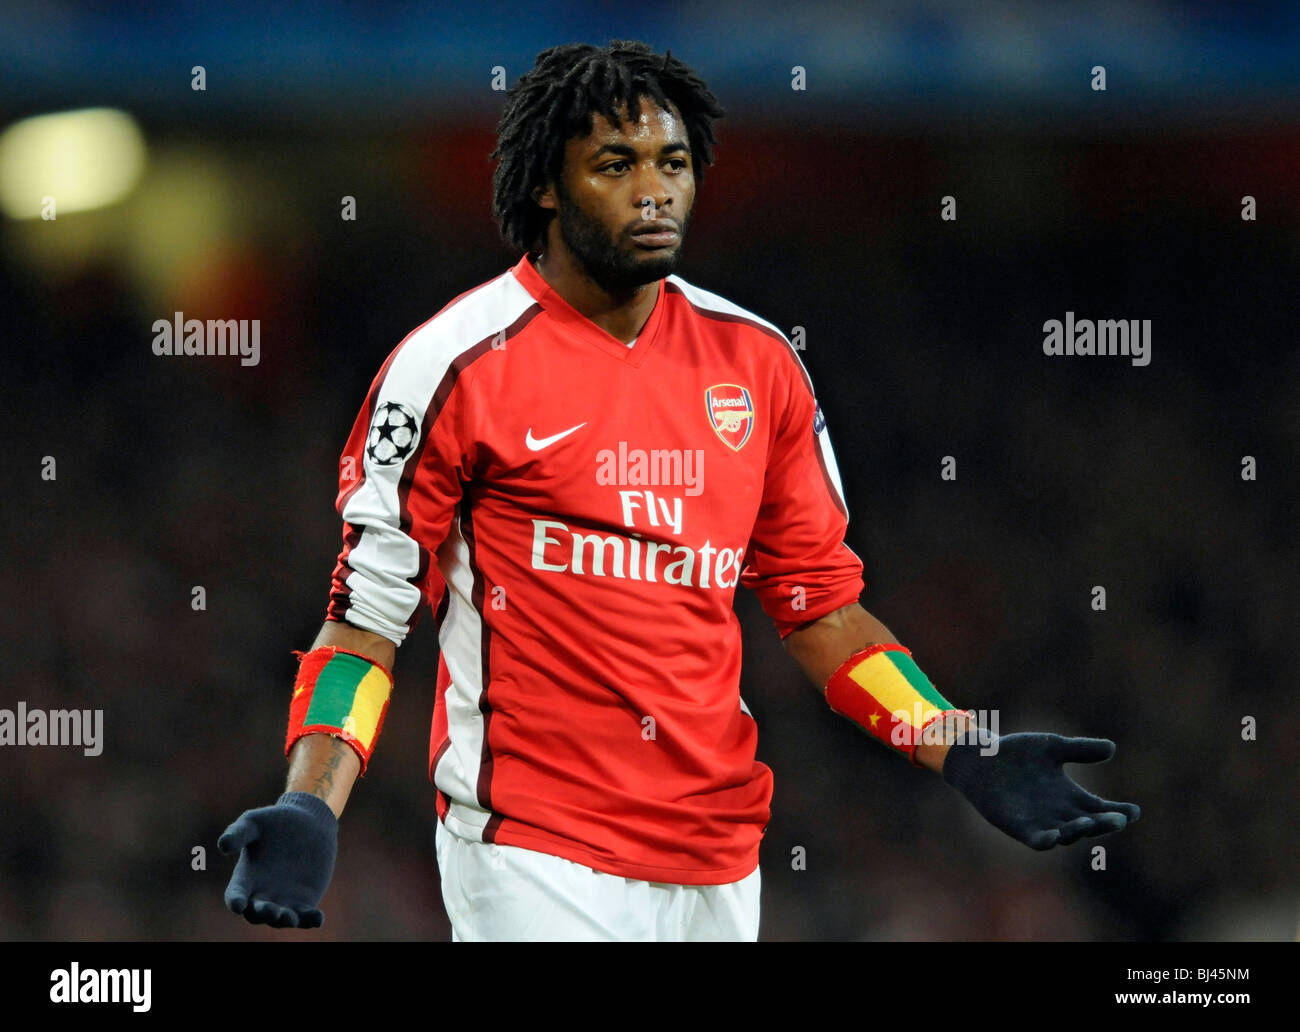 Arsenal No 17 Alexandre Song, Arsenal V Porto UEFA Champions League